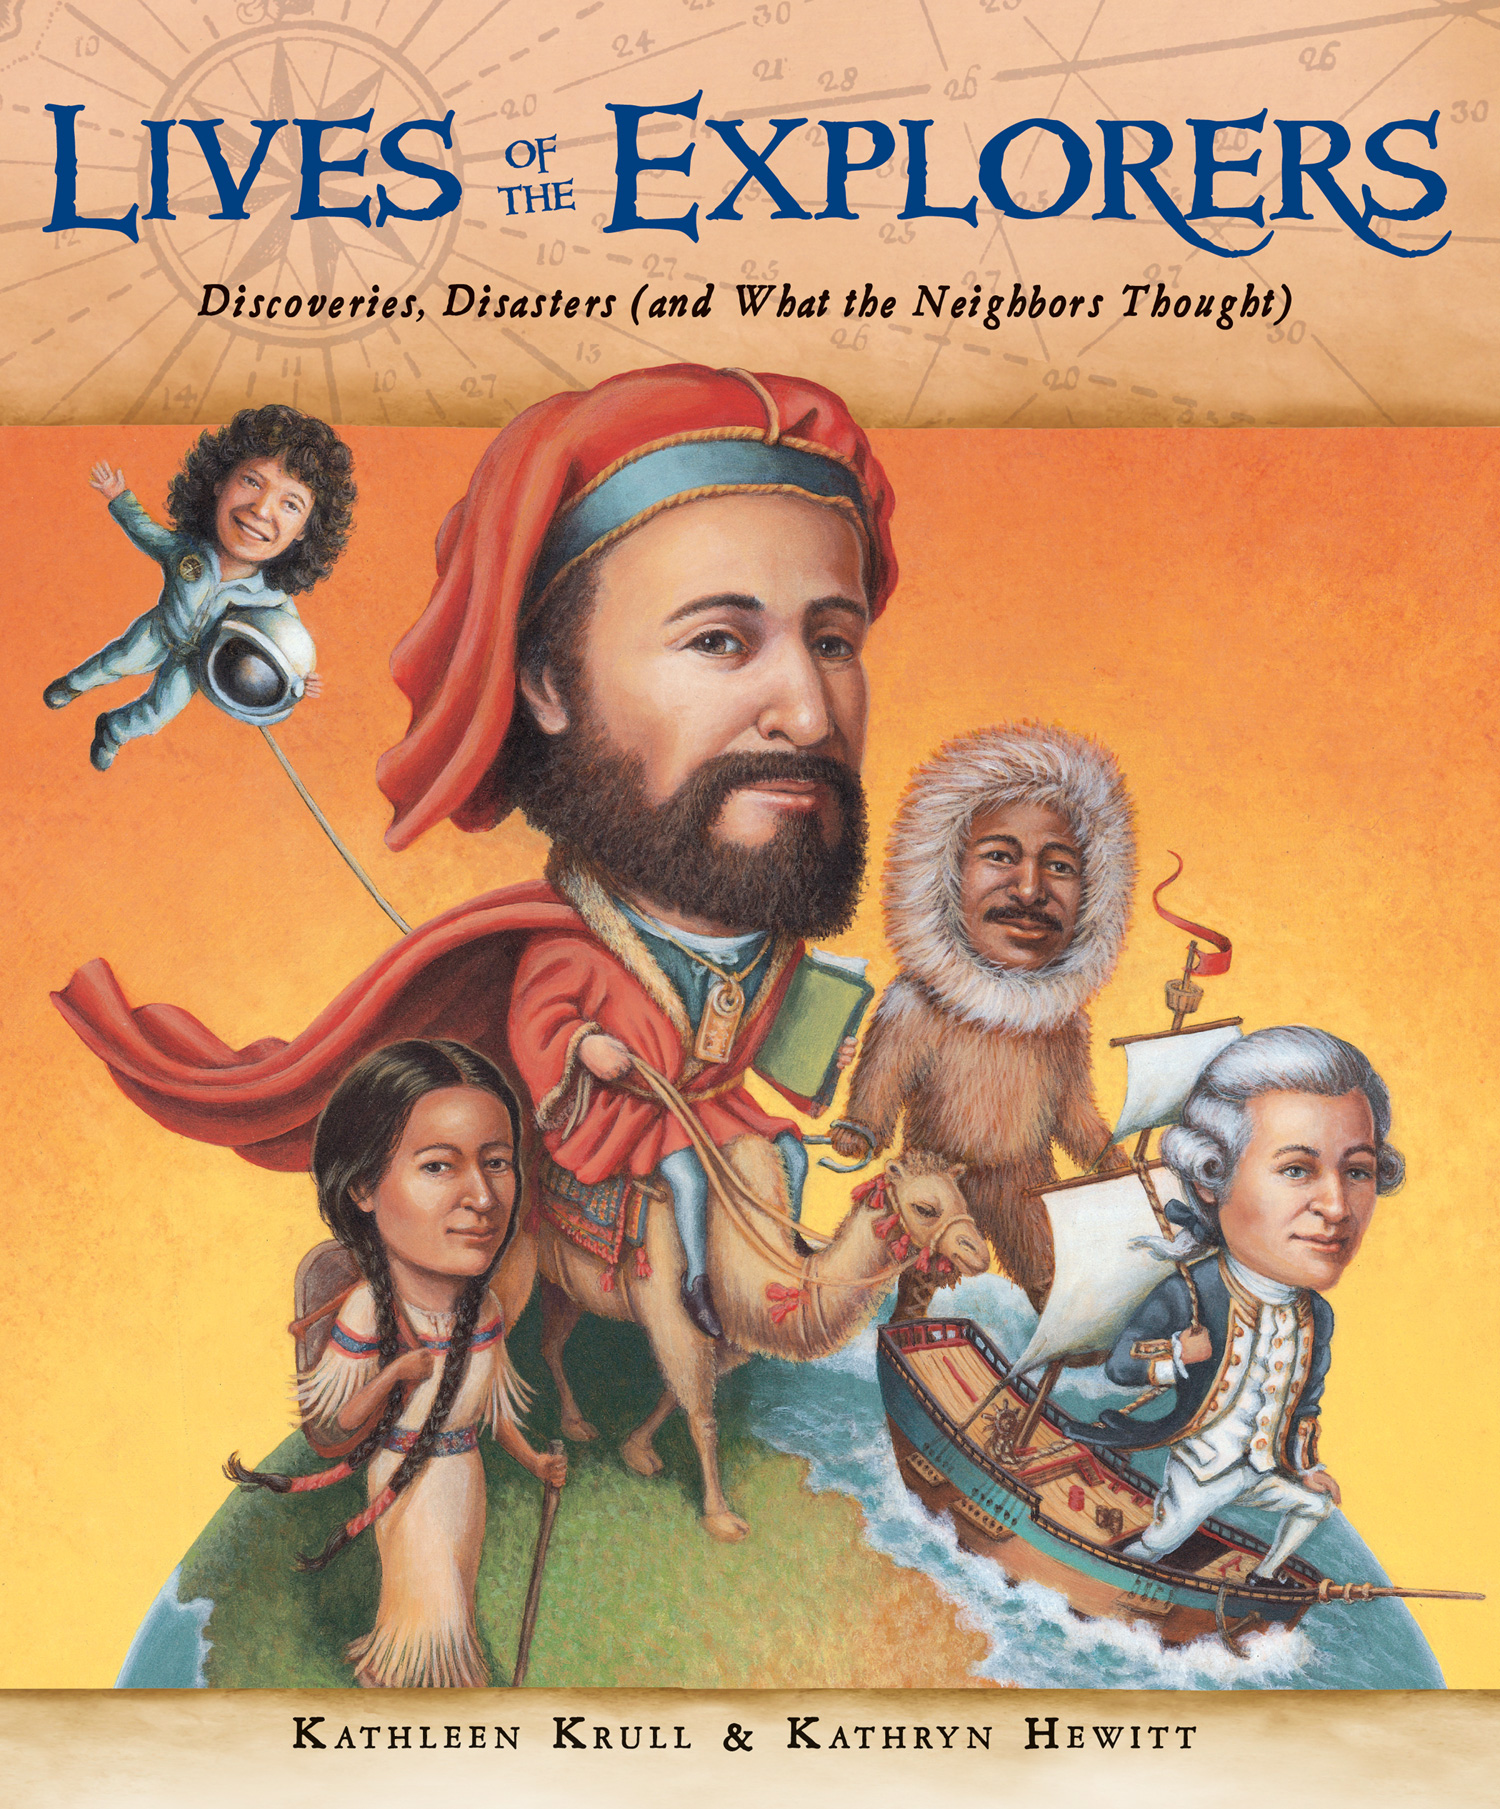 Lives of the Explorers: Discoveries, Disasters (and What the Neighbors Thought) - Kathleen Krull, illustrated by Kathryn Hewitt       Houghton Mifflin Harcourt 2014You might know that Columbus discovered America, Lewis and Clark headed west with Sacajawea, and Sally Ride blasted into space. But what do you really know about these bold explorers? What were they like as kids? What pets or bad habits did they have? And what drove their passion to explore unknown parts of the world? With juicy tidbits about everything from favorite foods to first loves, Lives of the Explorers reveals these fascinating adventurers as both world-changers and real people.